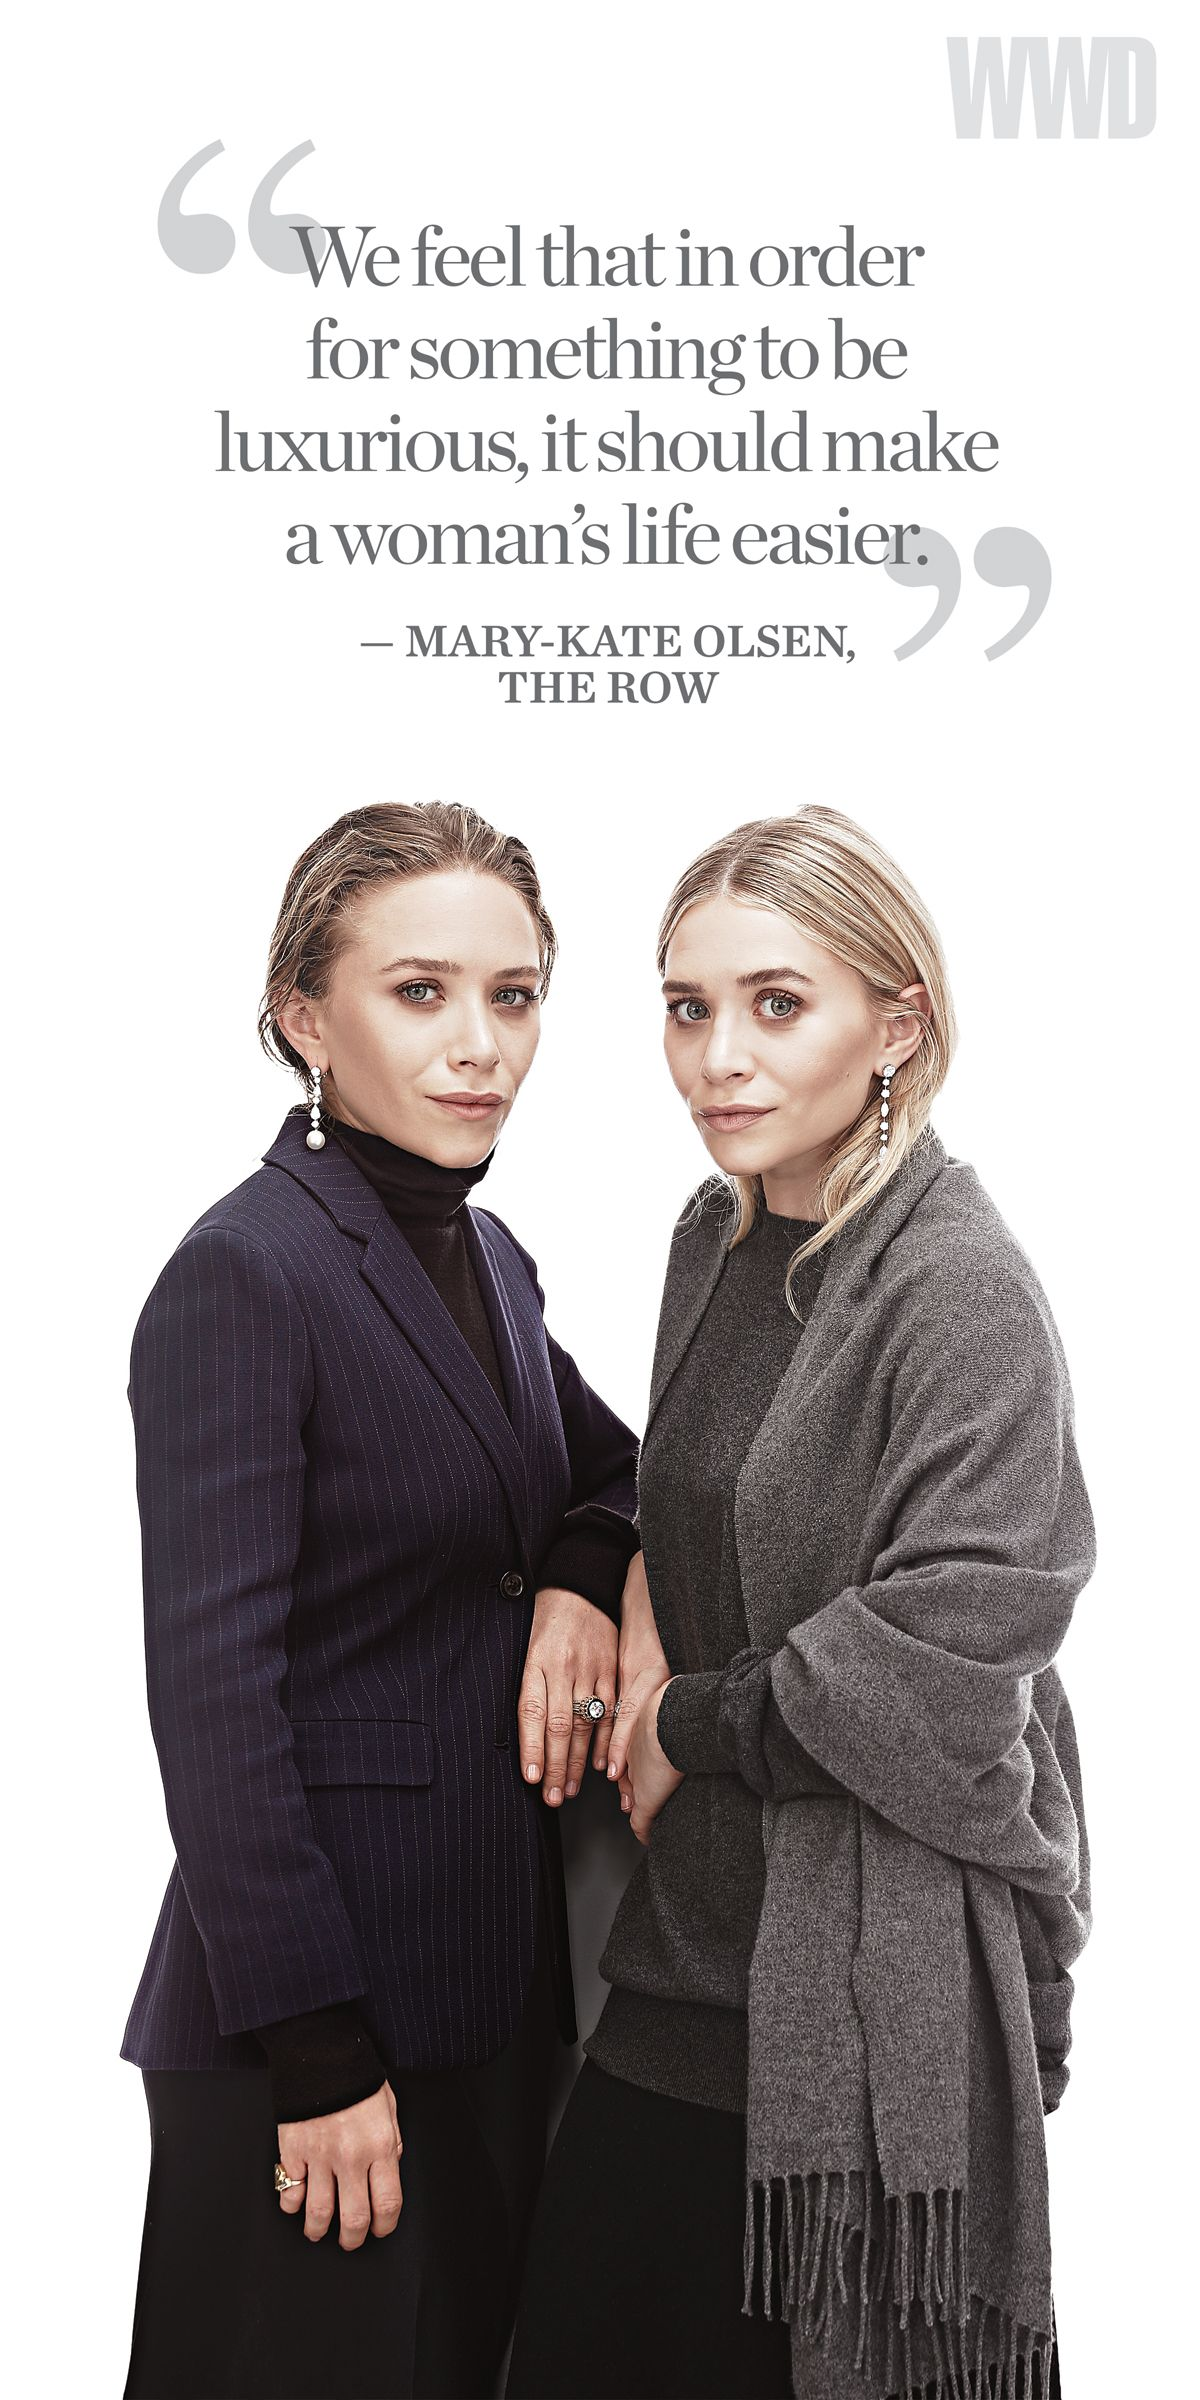 Ashley Olsen And Mary Kate Olsen For The Row Accessory Designer Of The Year Fashionistas Love Luxurious Olsen Twins Style Mary Kate Mary Kate Ashley